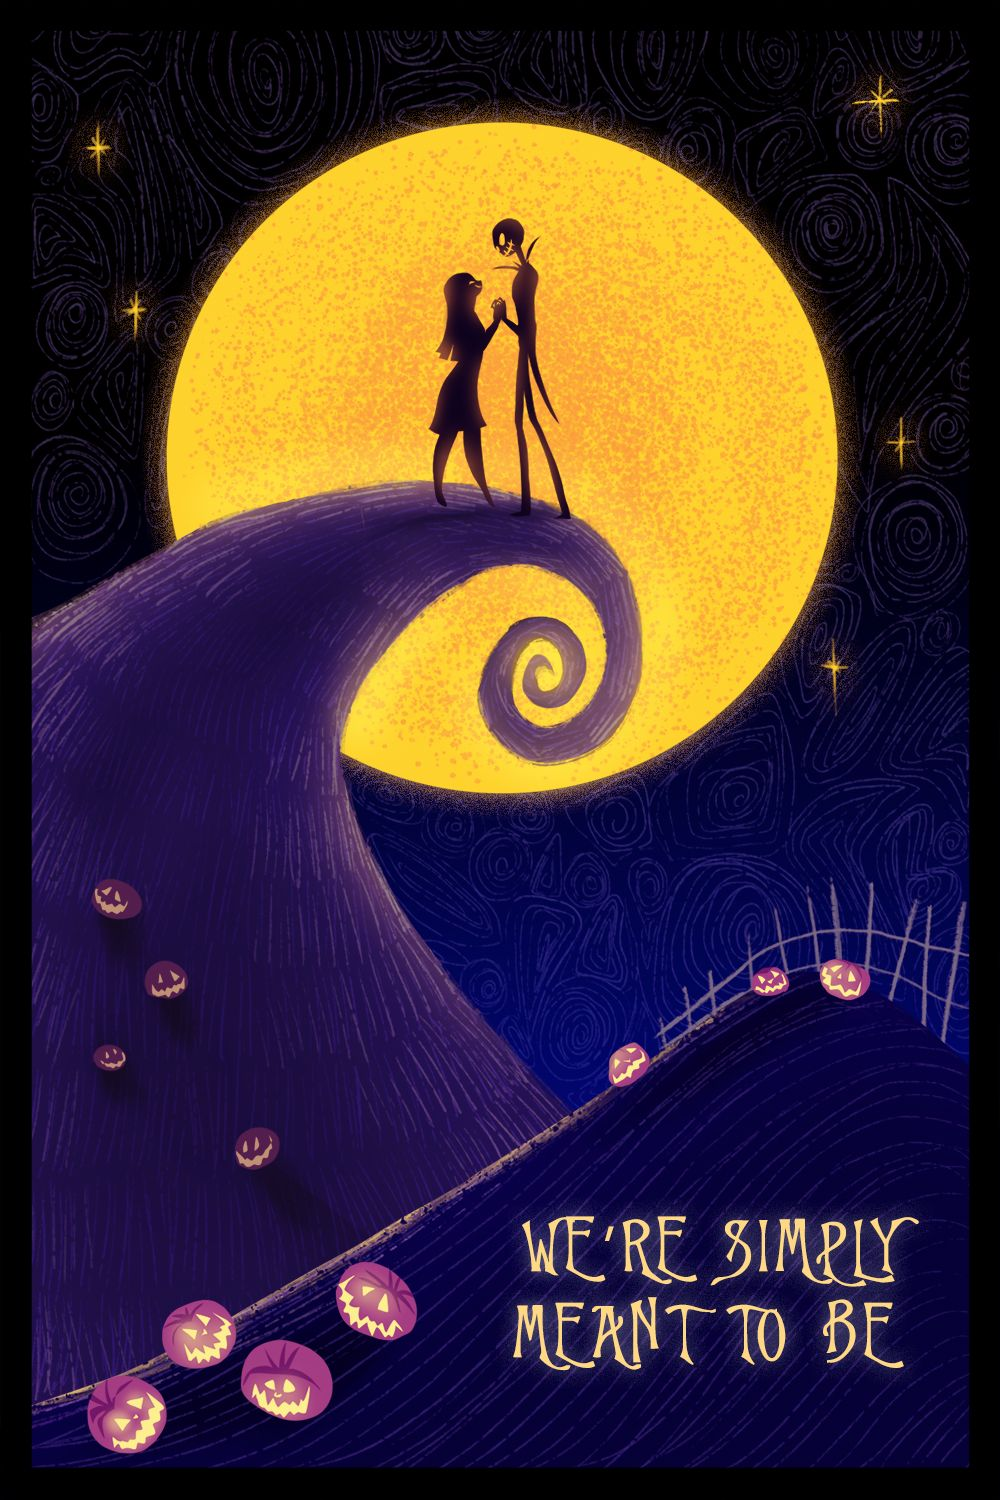 Adorable Disney Valentine's Day Cards | Cards, Tim burton and Sally